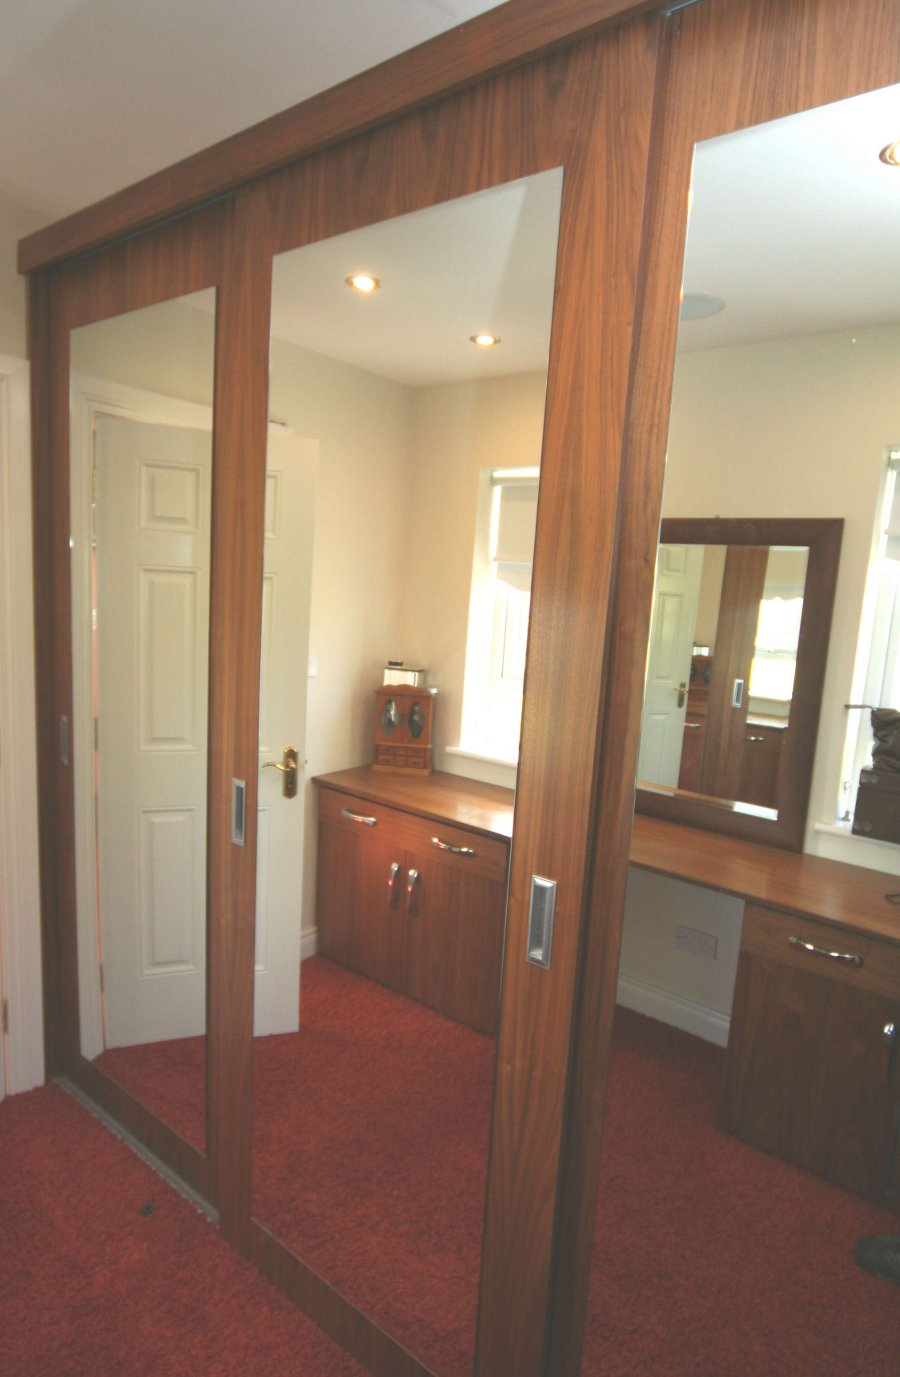 Bedrooms By Paul James Co Donegal Ireland